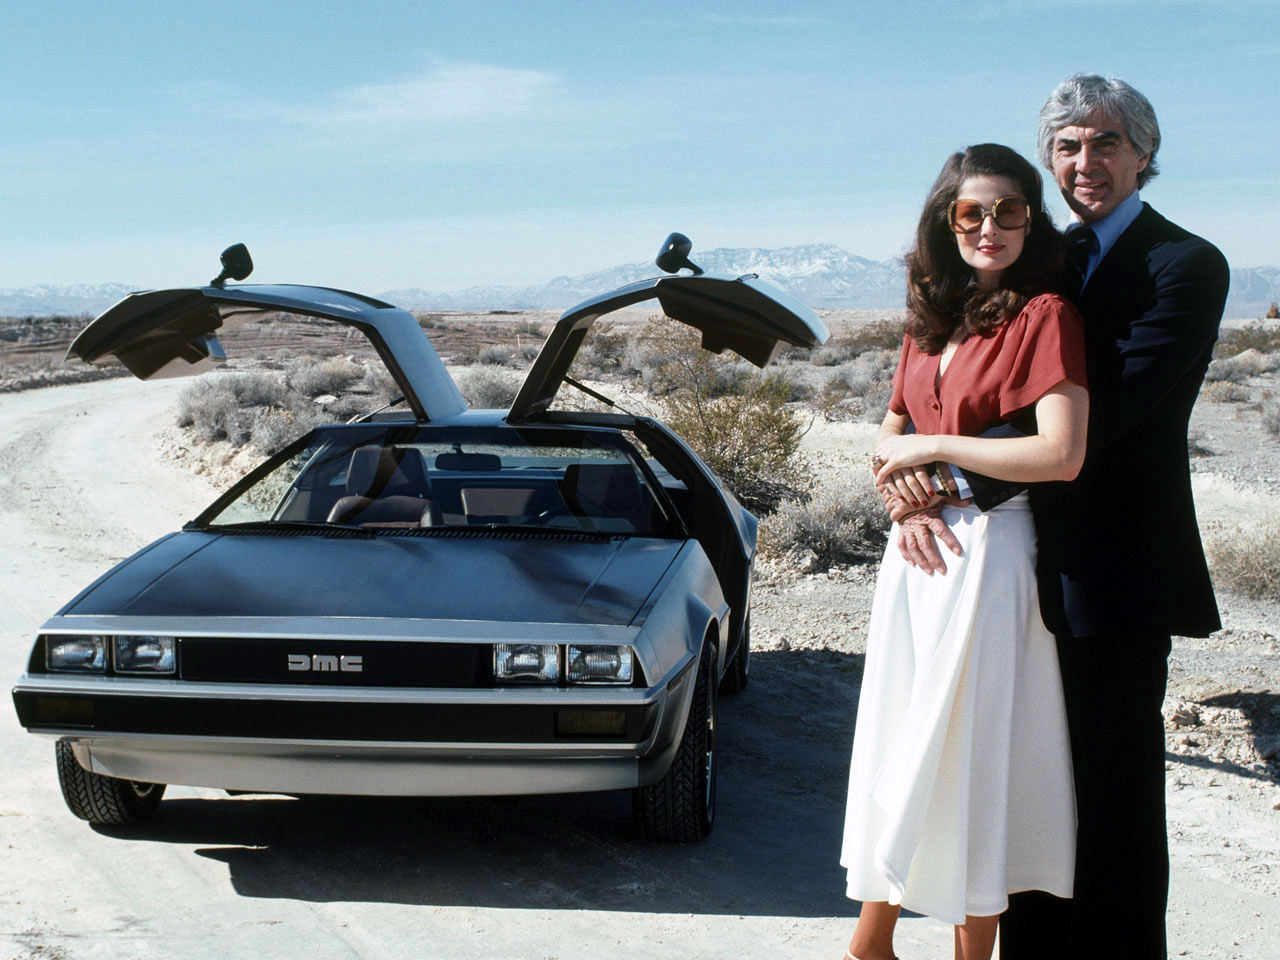 DeLorean DMC-12 John and Wife